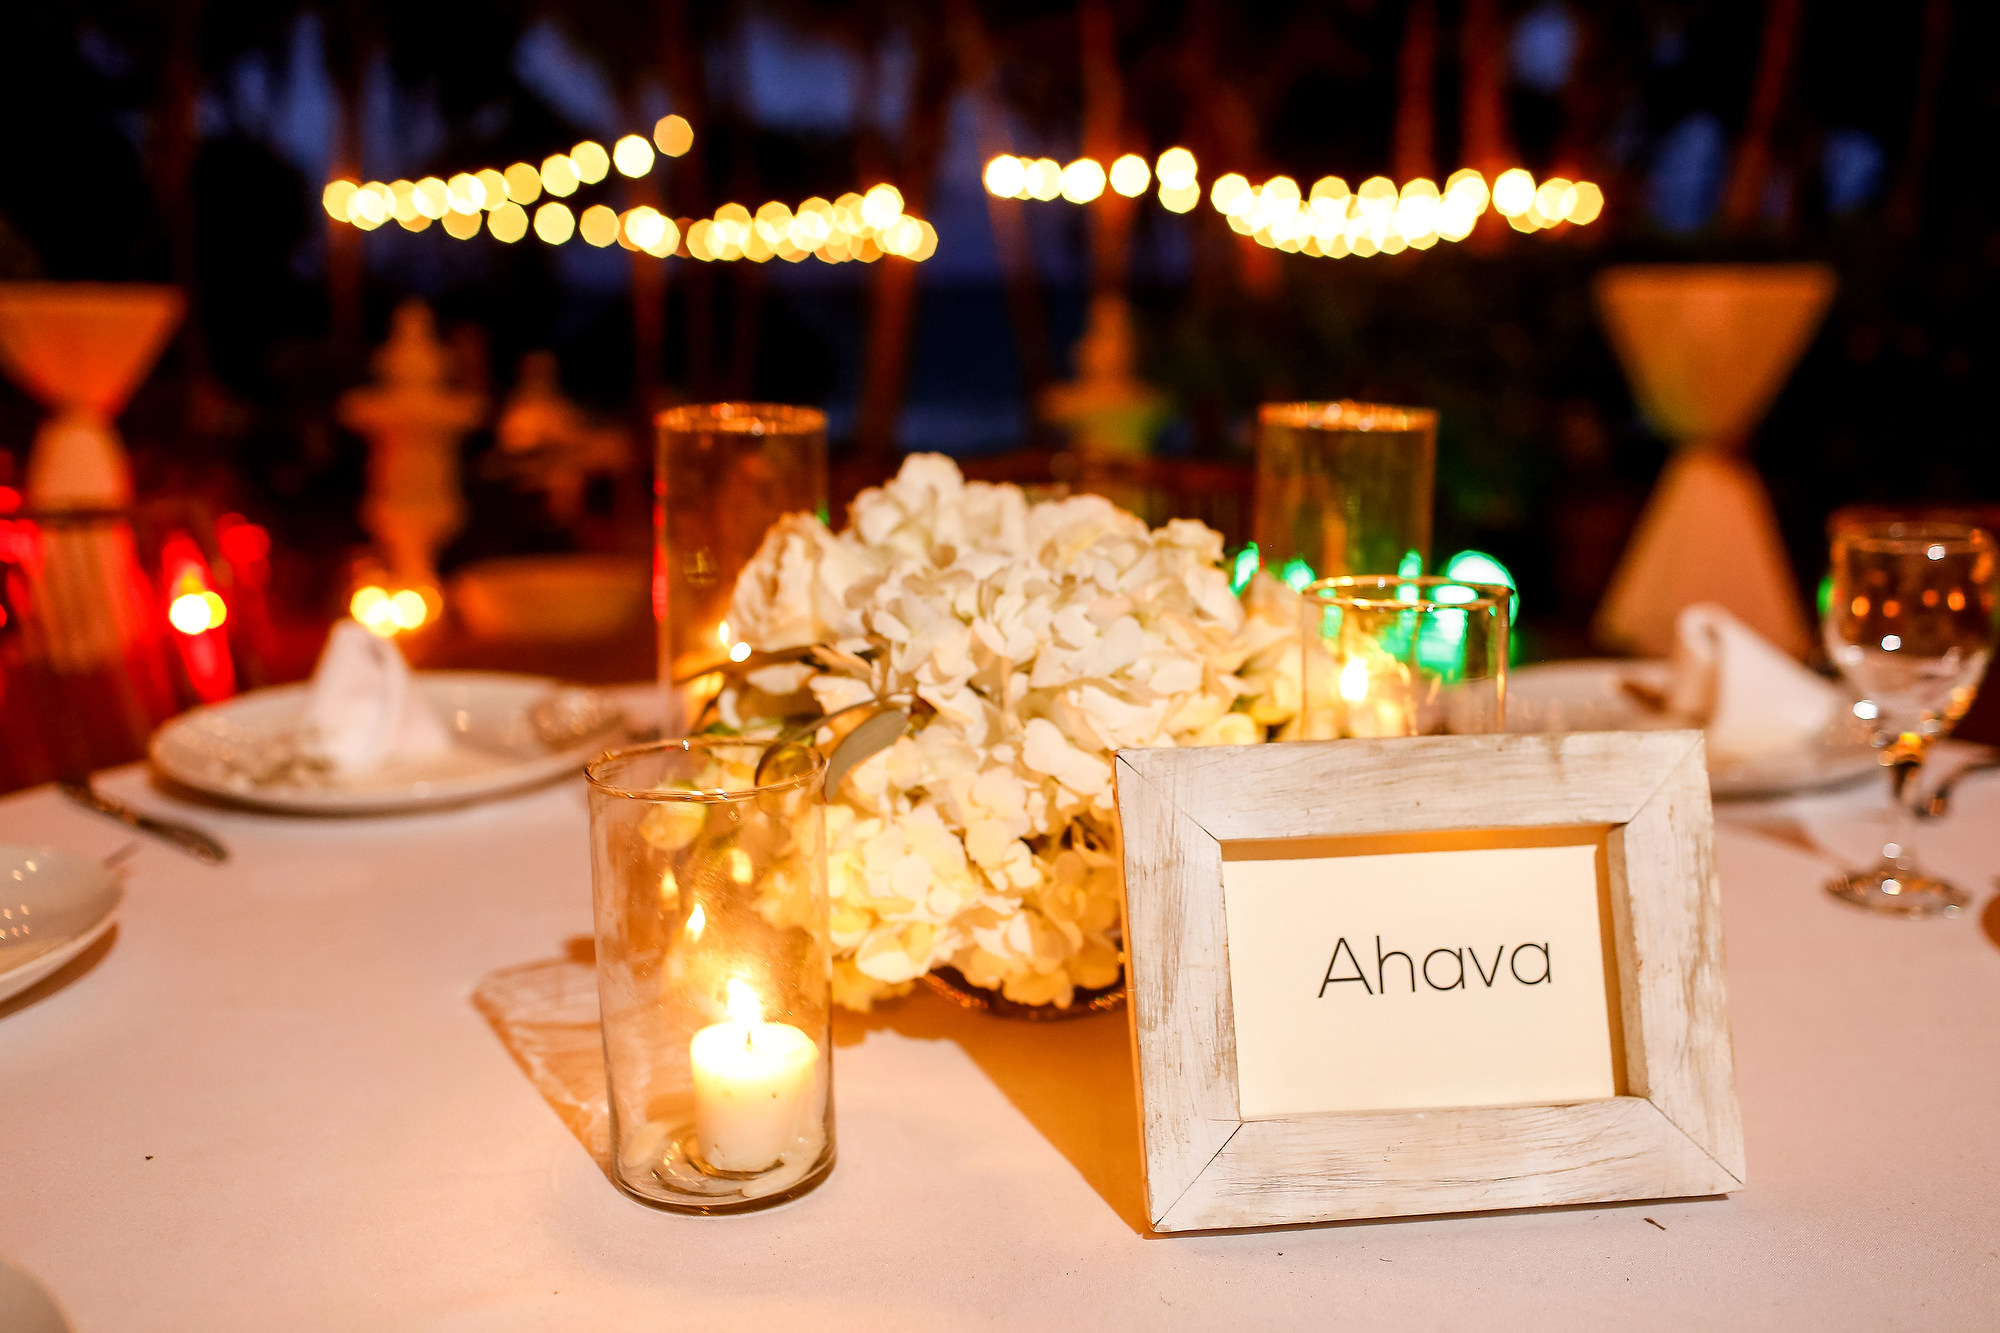 Ahava wedding